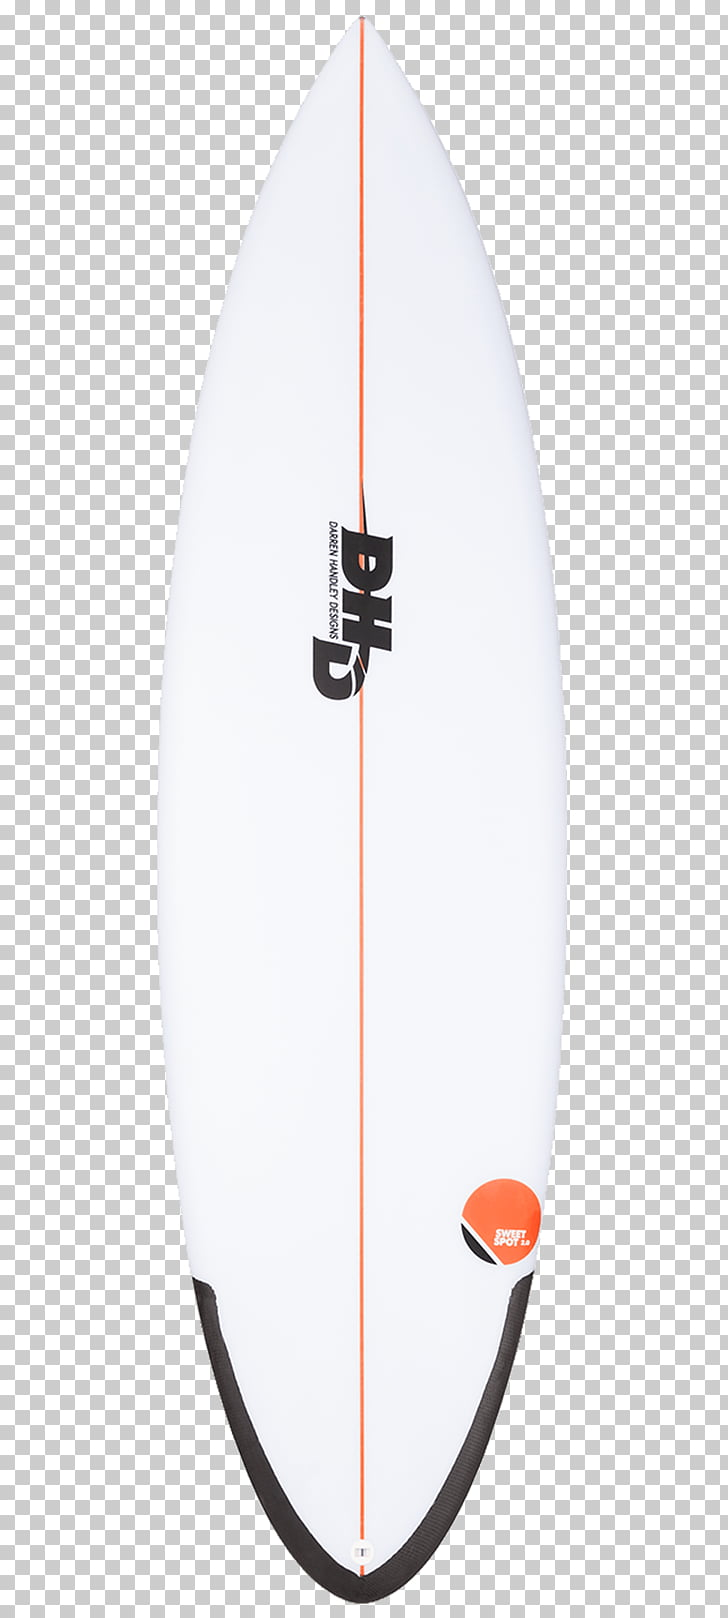 medium resolution of surfboard surfing leg rope fcs surf board png clipart